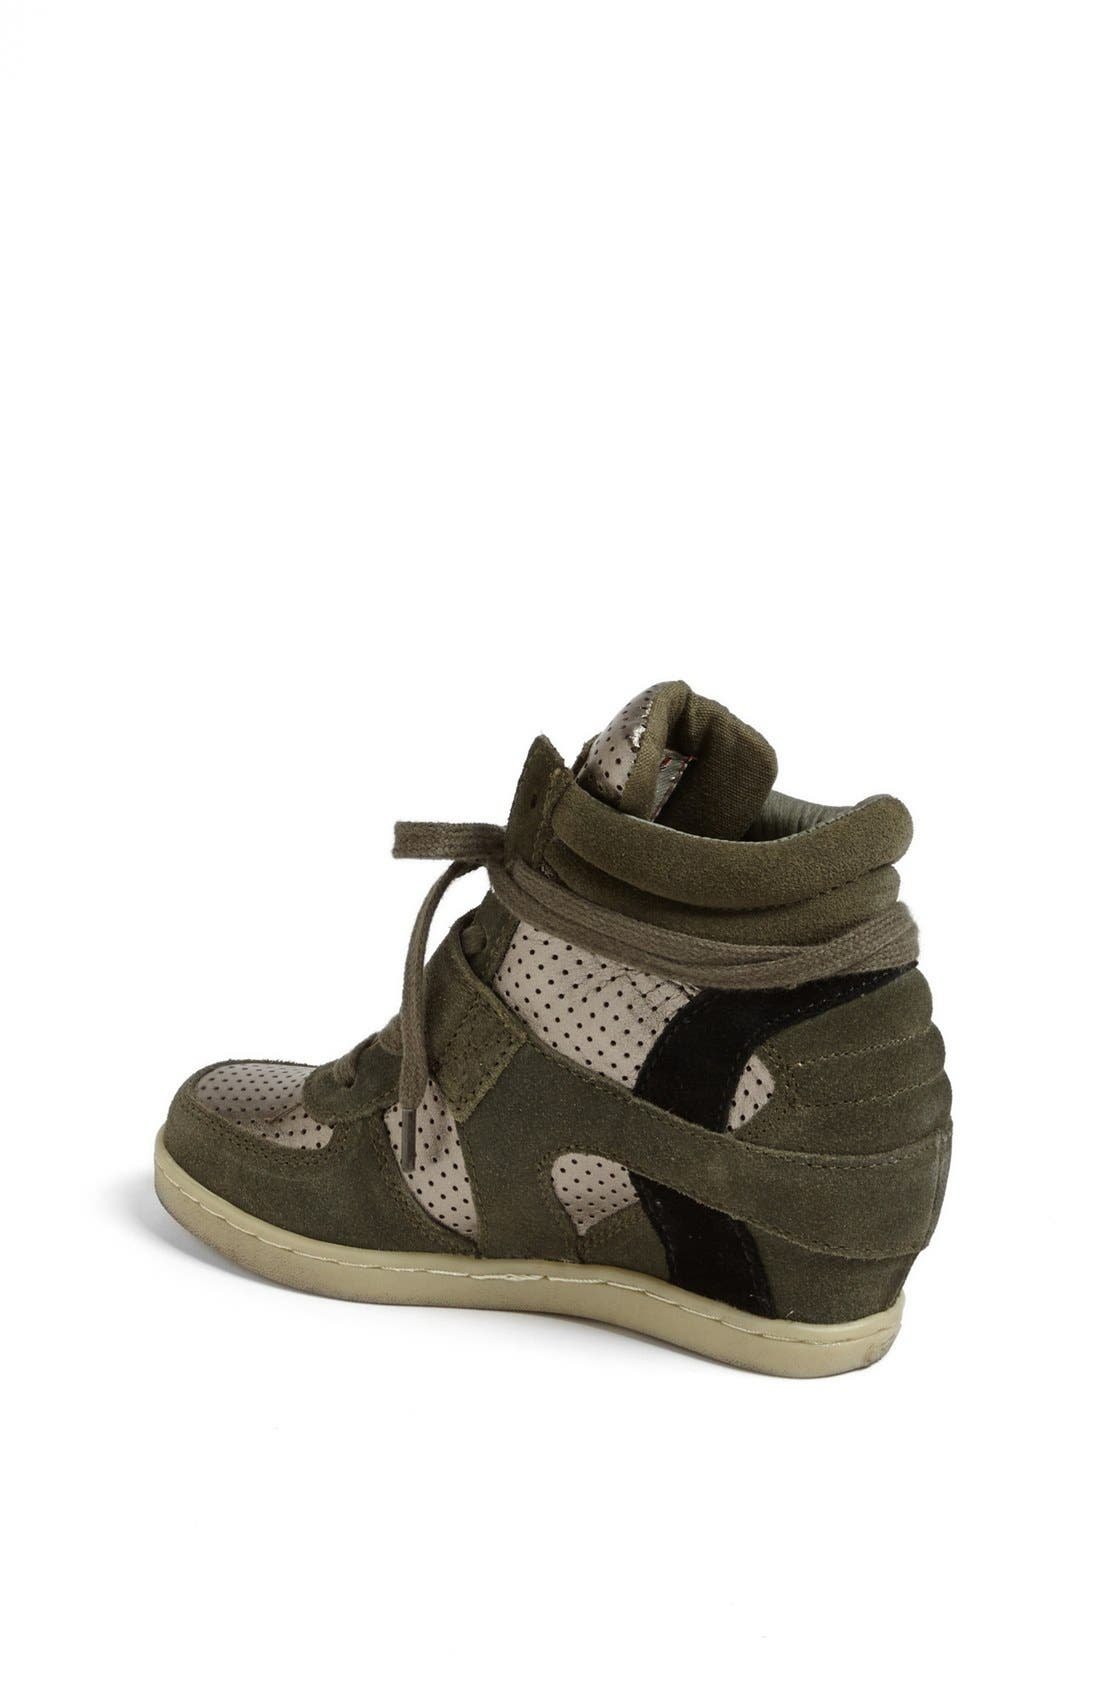 Alternate Image 2  - Ash 'Babe' Hidden Wedge Sneaker (Toddler, Little Kid & Big Kid)